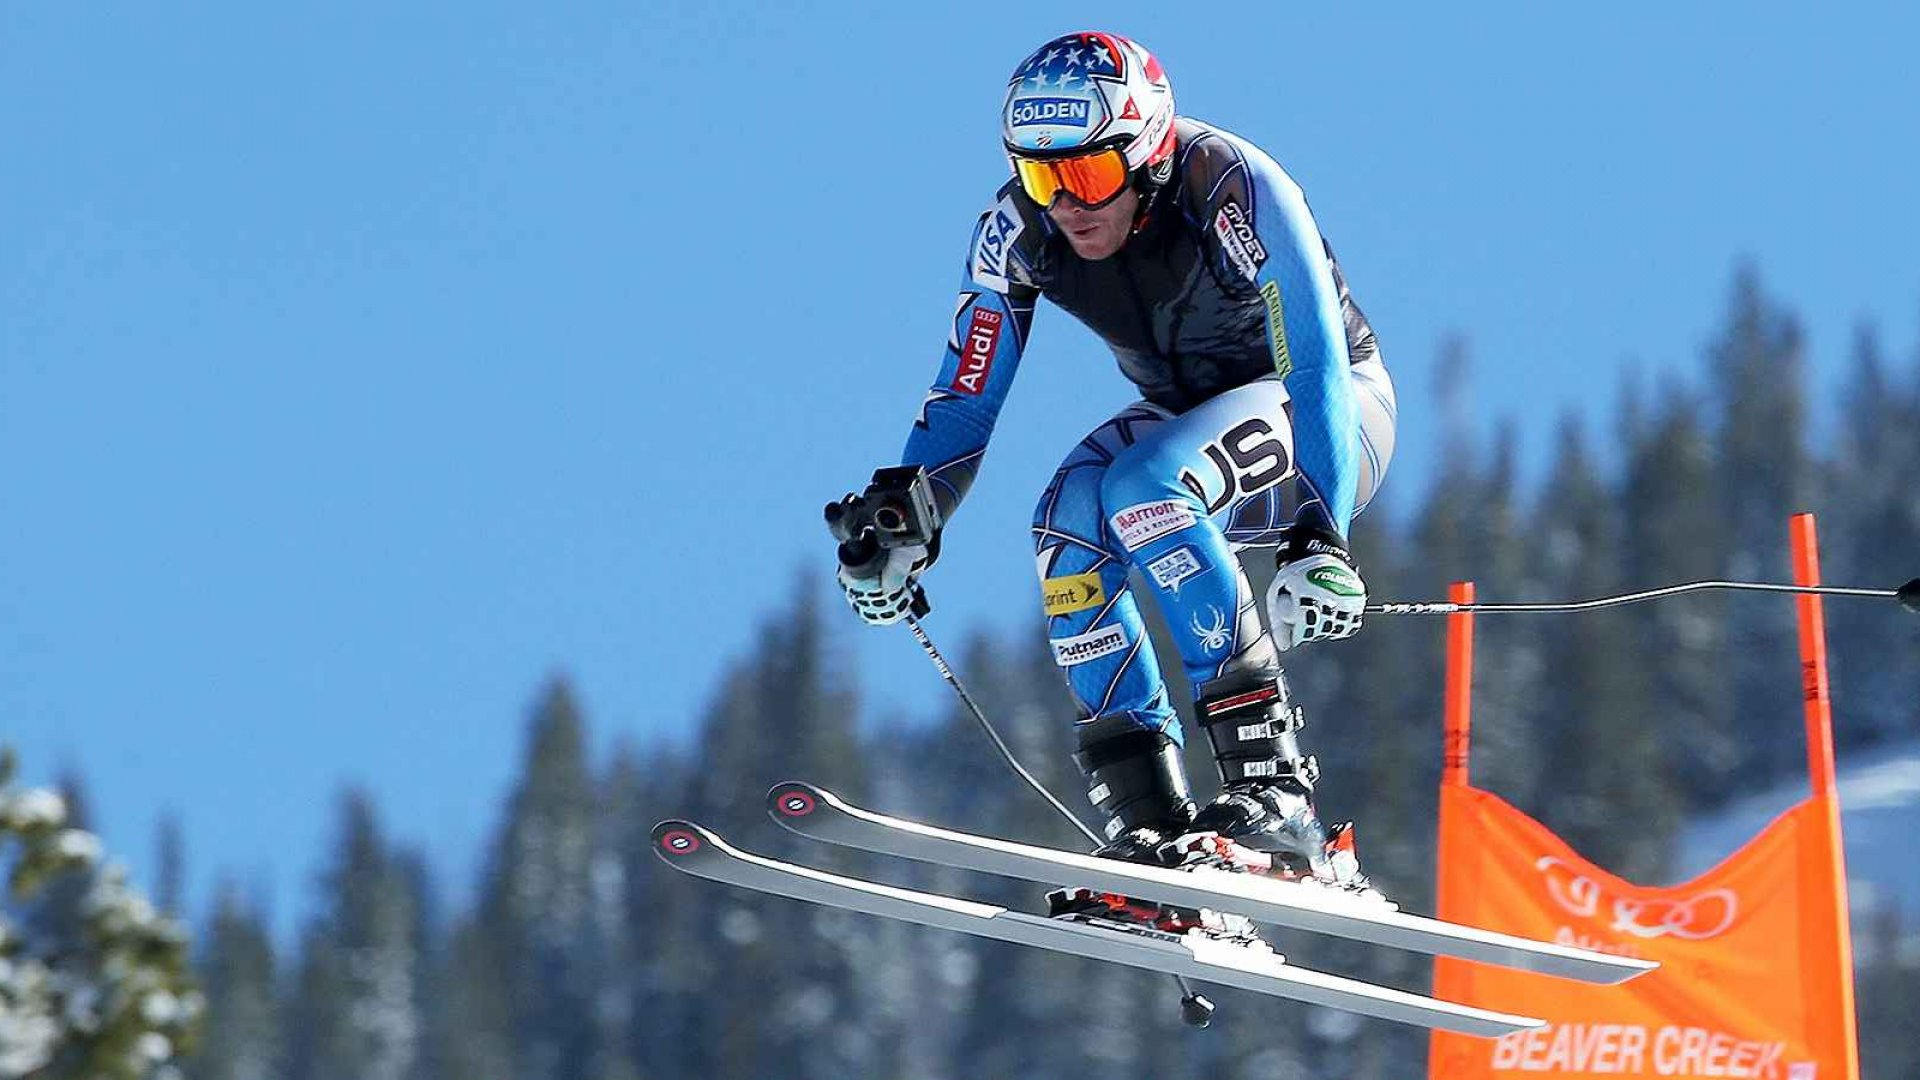 A skier of stunning ability, Bode Miller says his experience on the slopes will translate into better gear for amateurs.